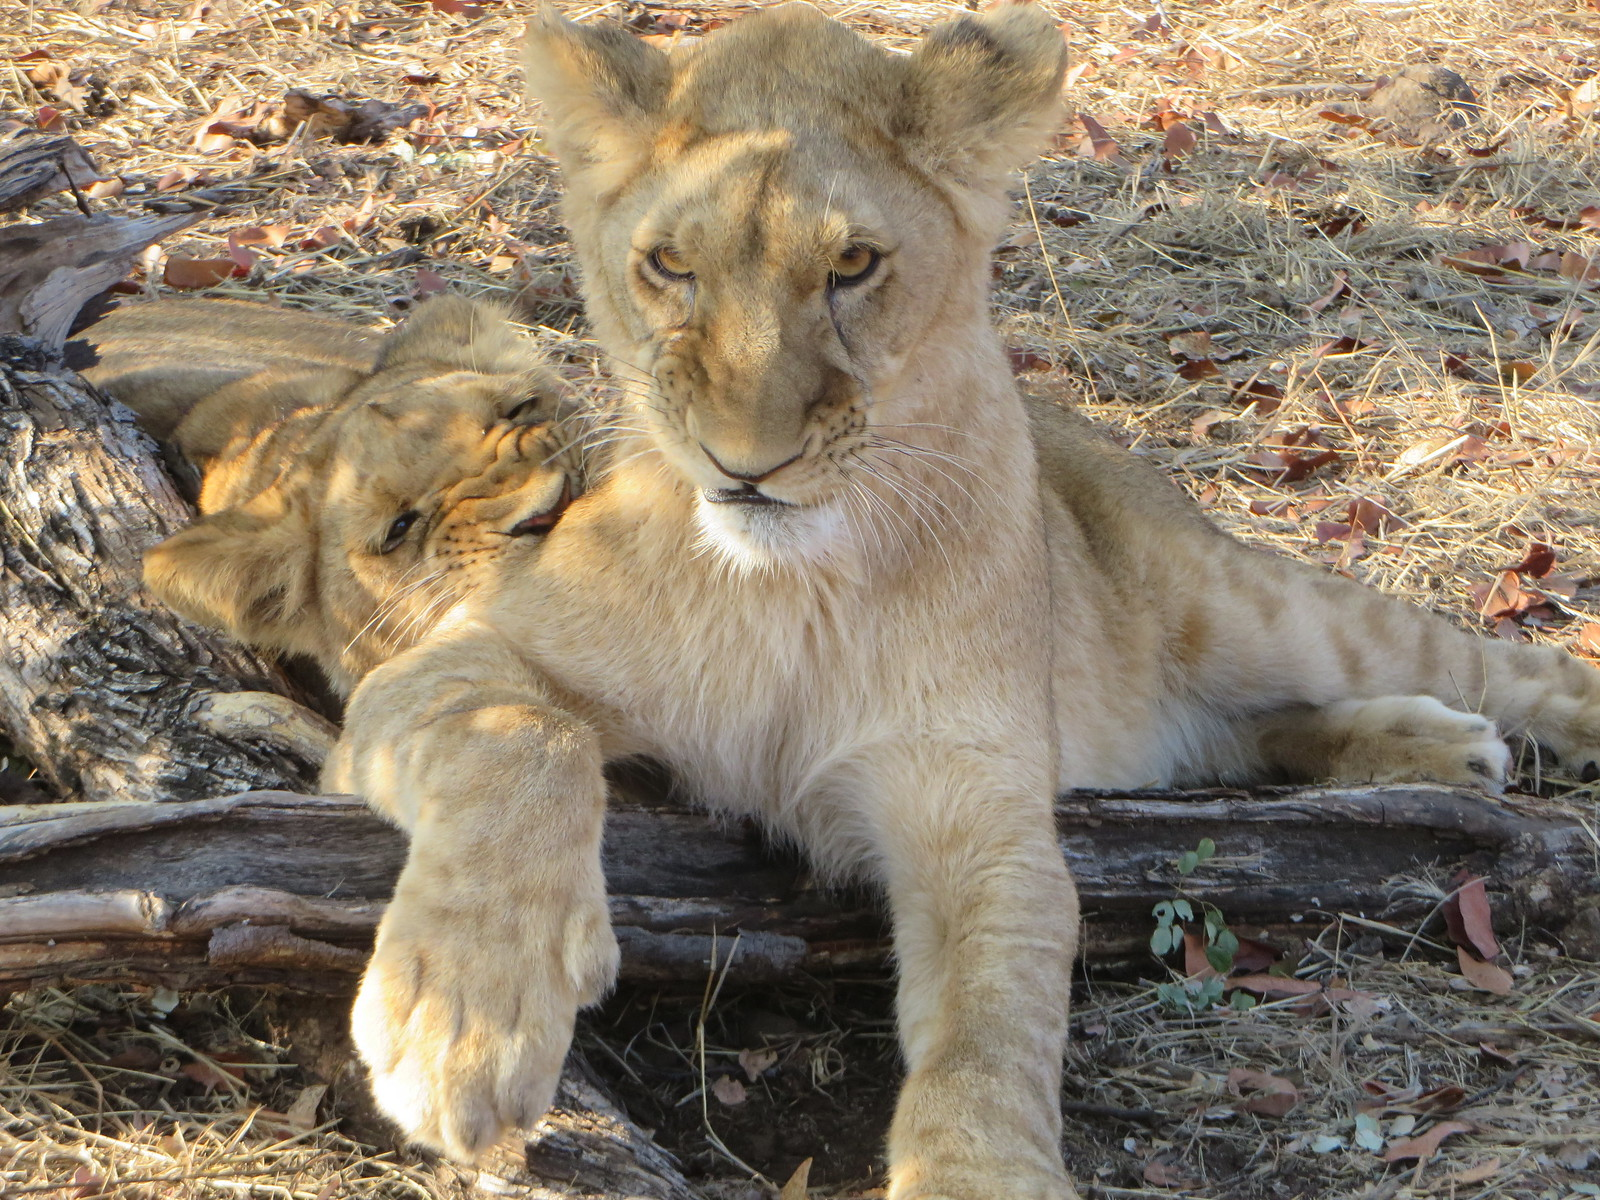 My favorite expression the lion cub made when his sibling was nipping at his leg for fun.